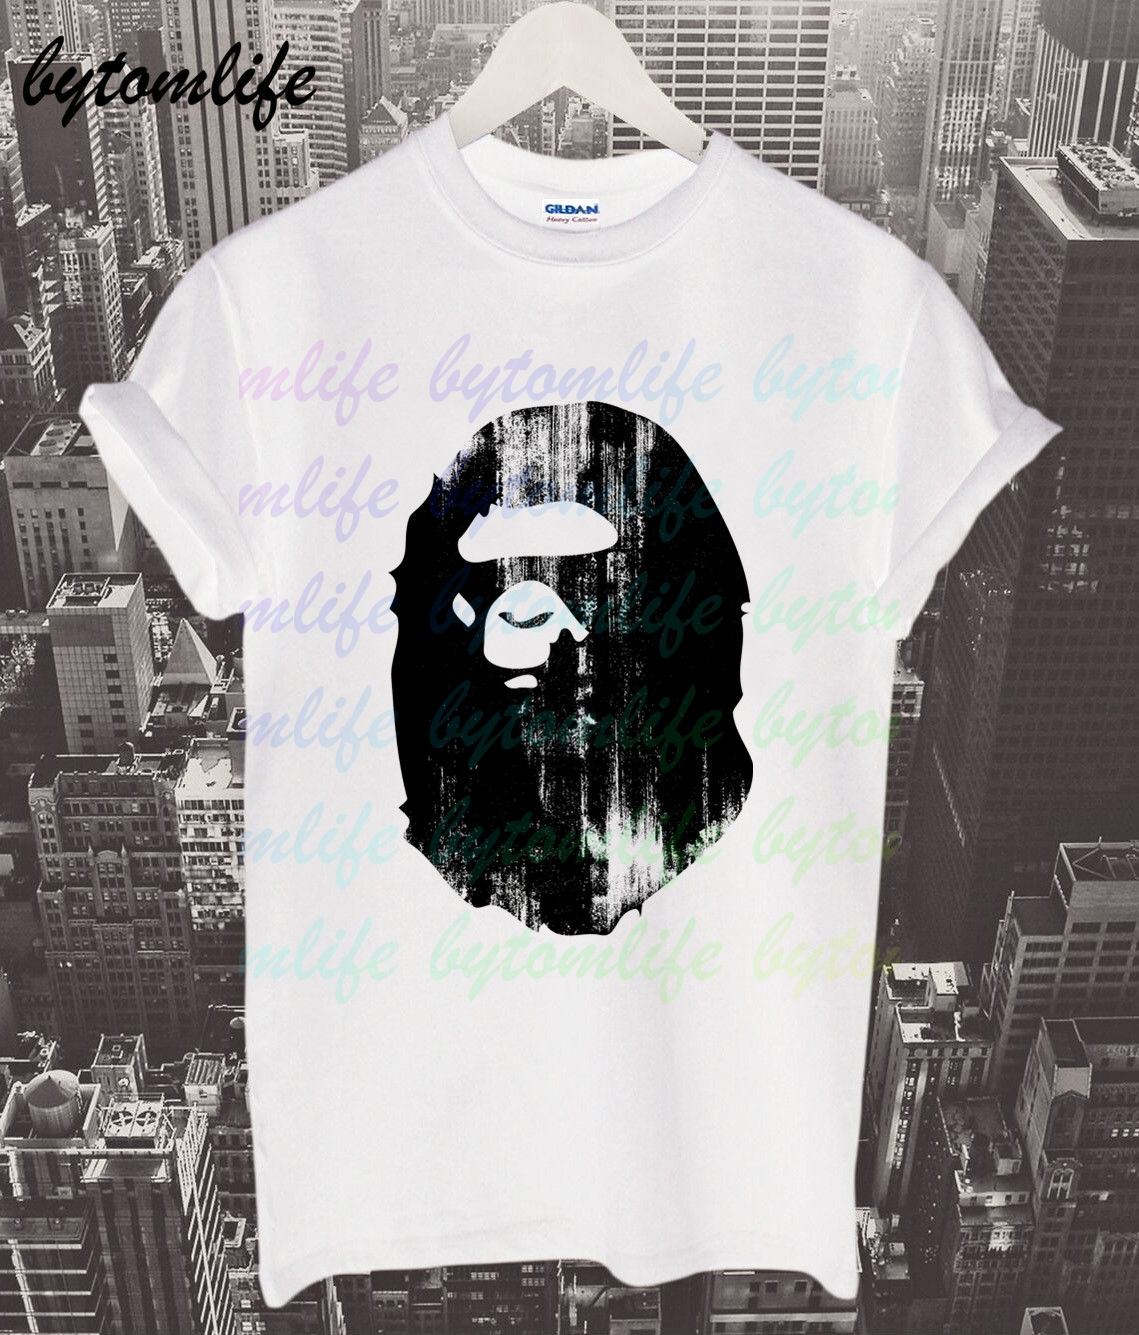 A Bathing T-shirt Summer Print Ape White Black T Shirt Clothes Popular Shirt Cotton Tees Amazing Short Sleeve Unique Men Tops